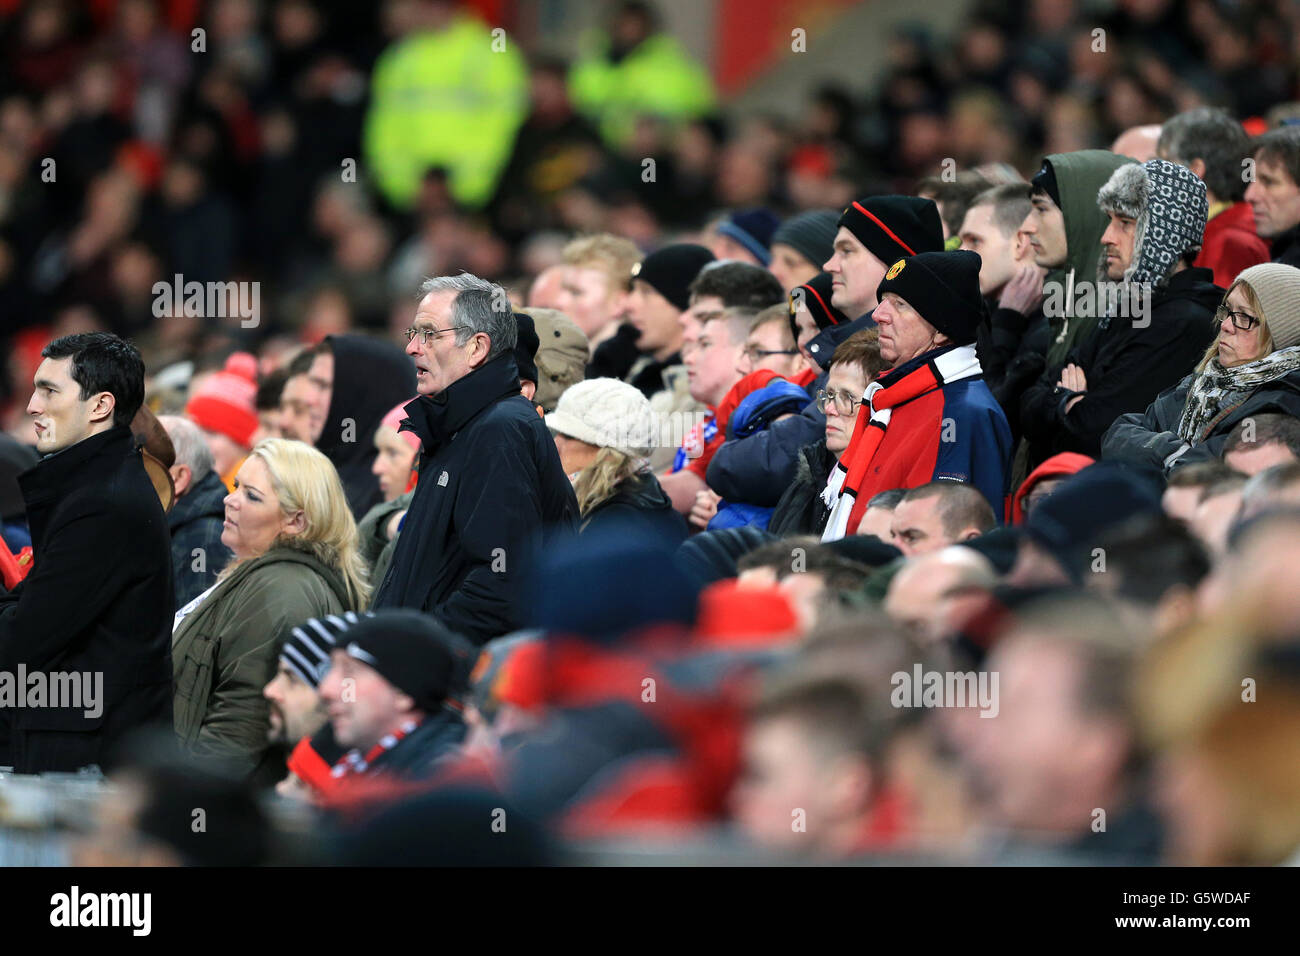 Soccer - Barclays Premier League - Manchester United v Everton - Old Trafford - Stock Image